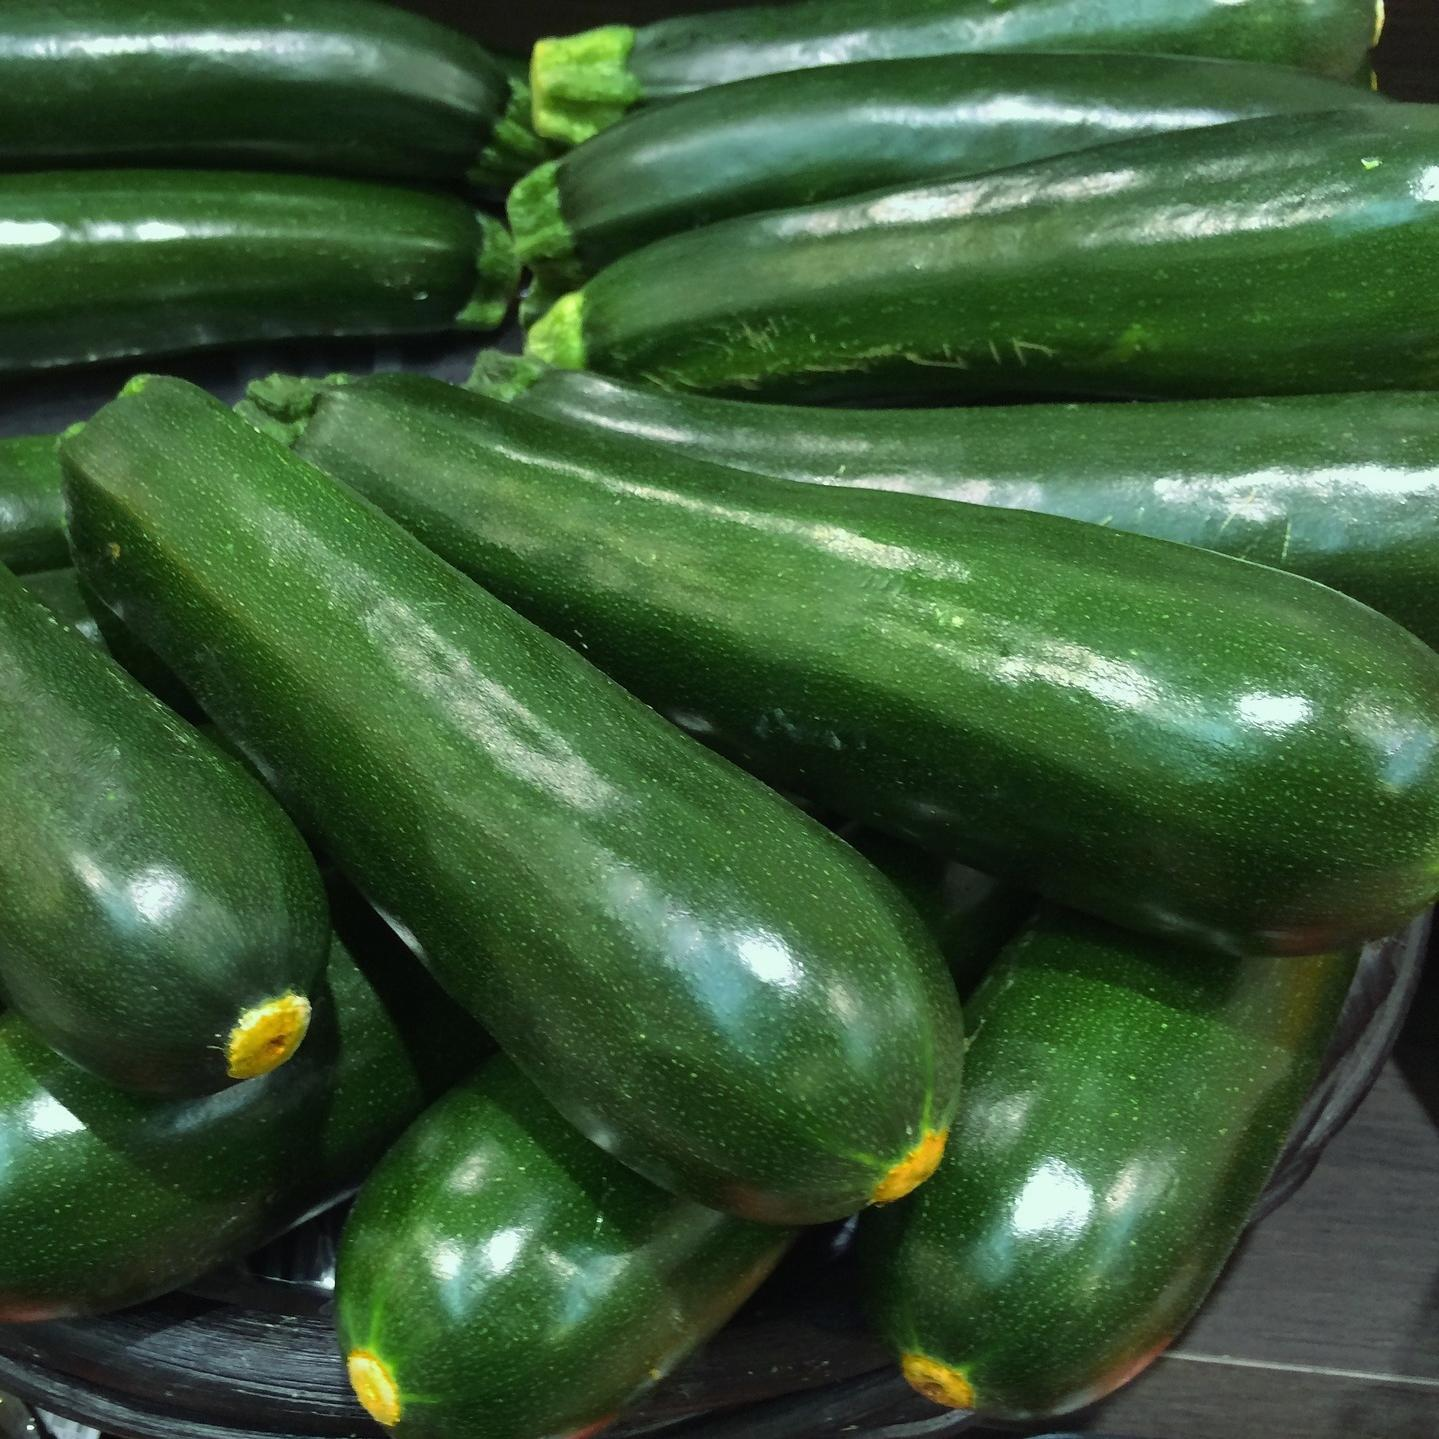 500g of Courgettes